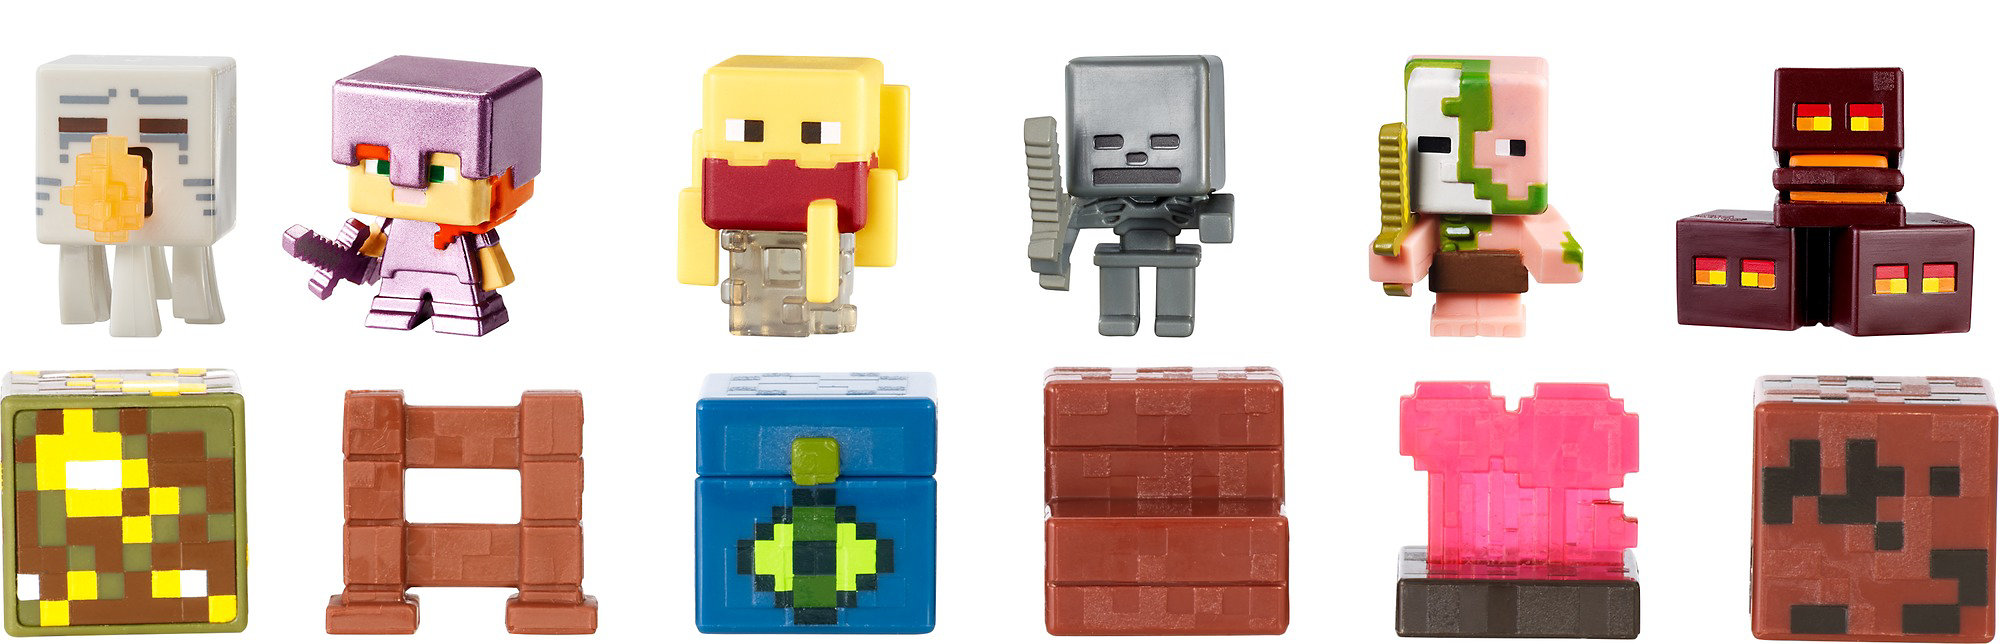 Minecraft Nether Biome Pack by MATTEL BRANDS A DIVISION OF MATTEL DIRECT IMPORT INC